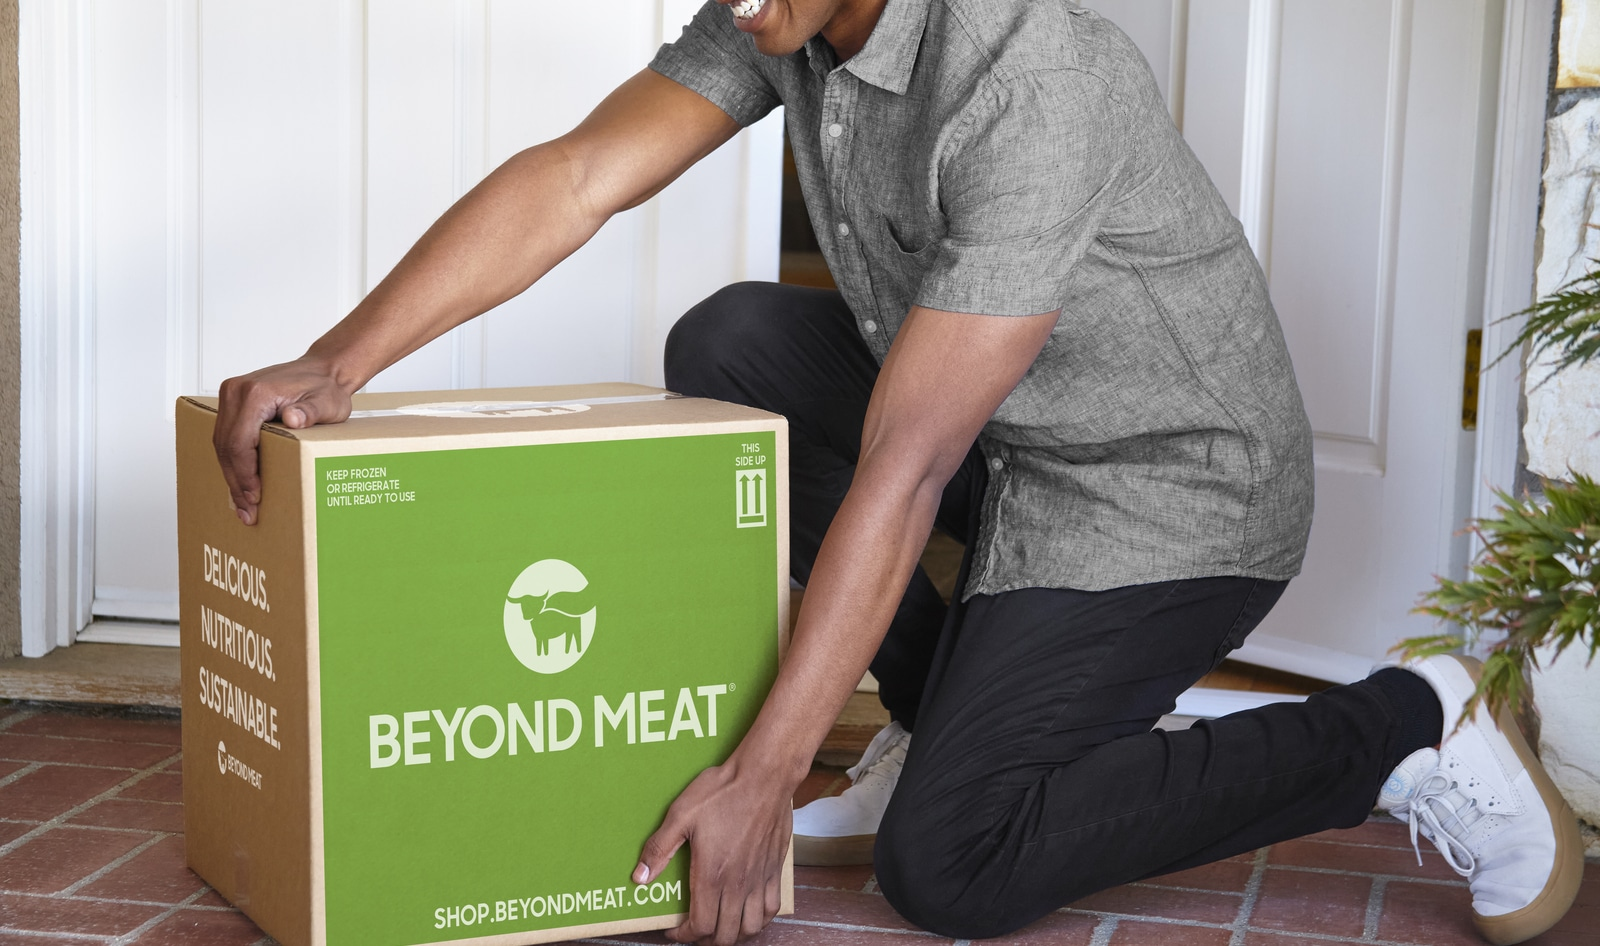 VegNews.BeyondMeatBox